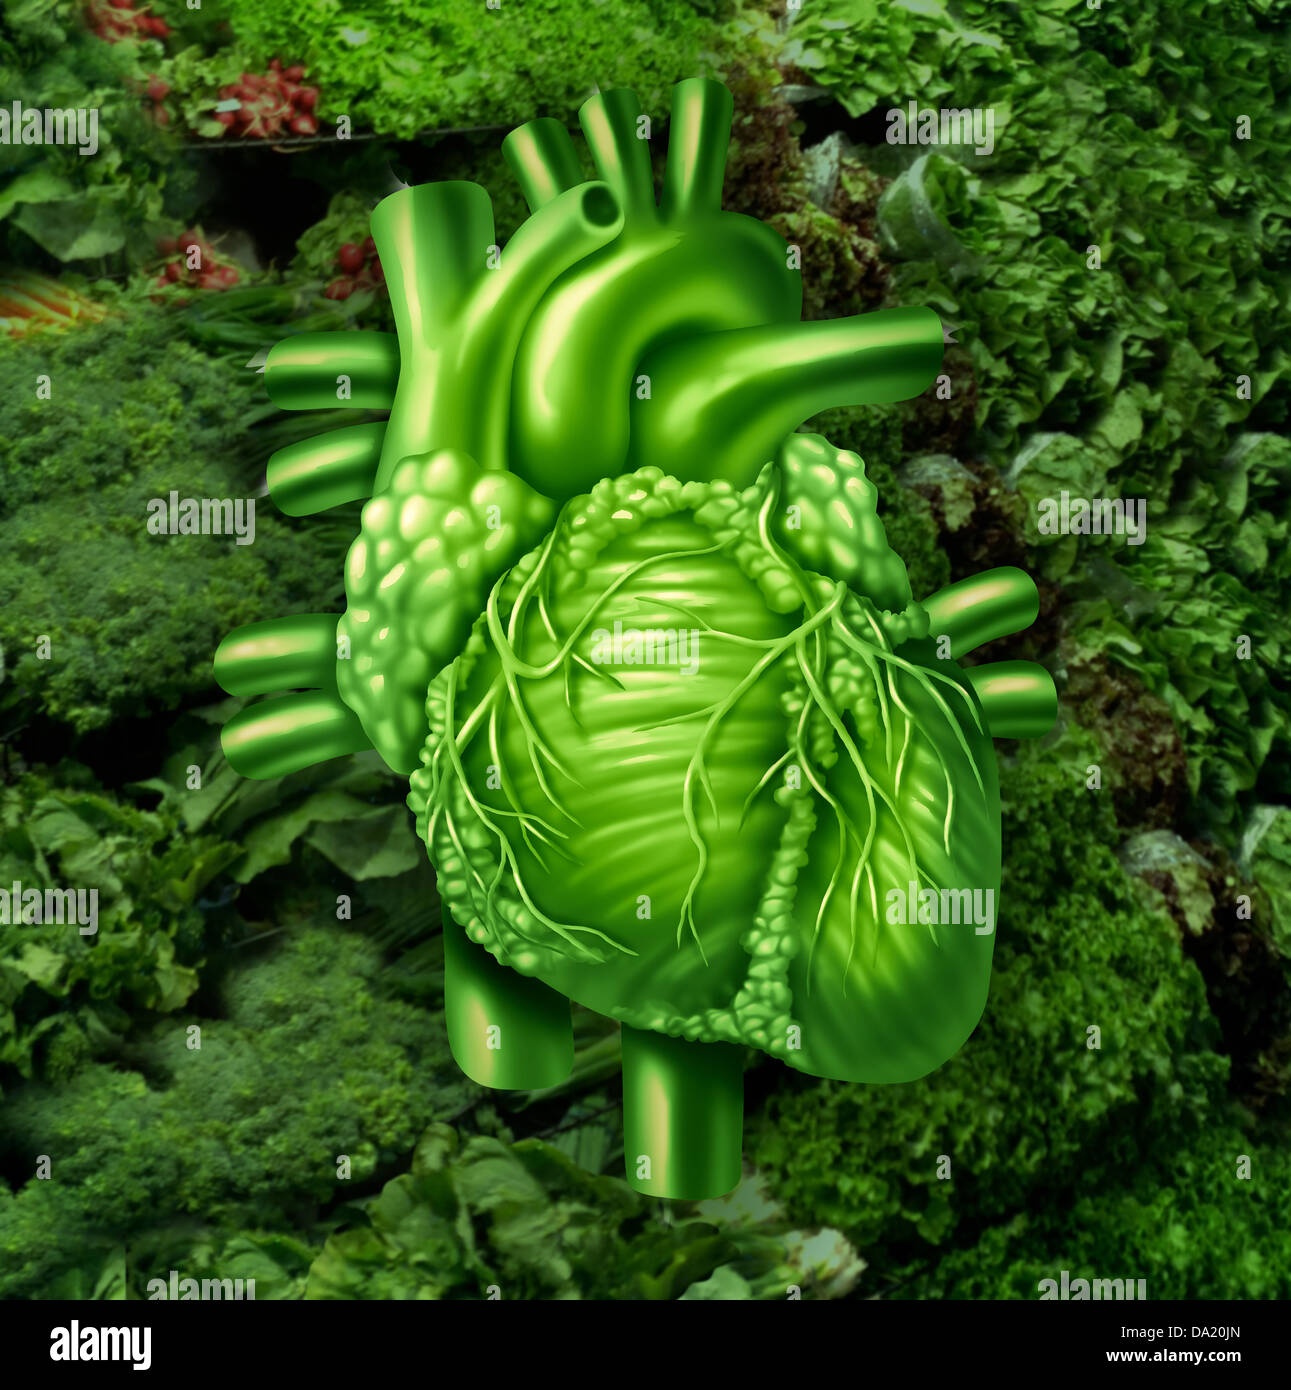 A Vitamin Contained In Leafy Green Vegetables Healthy heart diet with dark leafy green vegetables at a vegetable healthy heart diet with dark leafy green vegetables at a vegetable stand as a health care and nutrition concept for eating natural raw food packed with workwithnaturefo